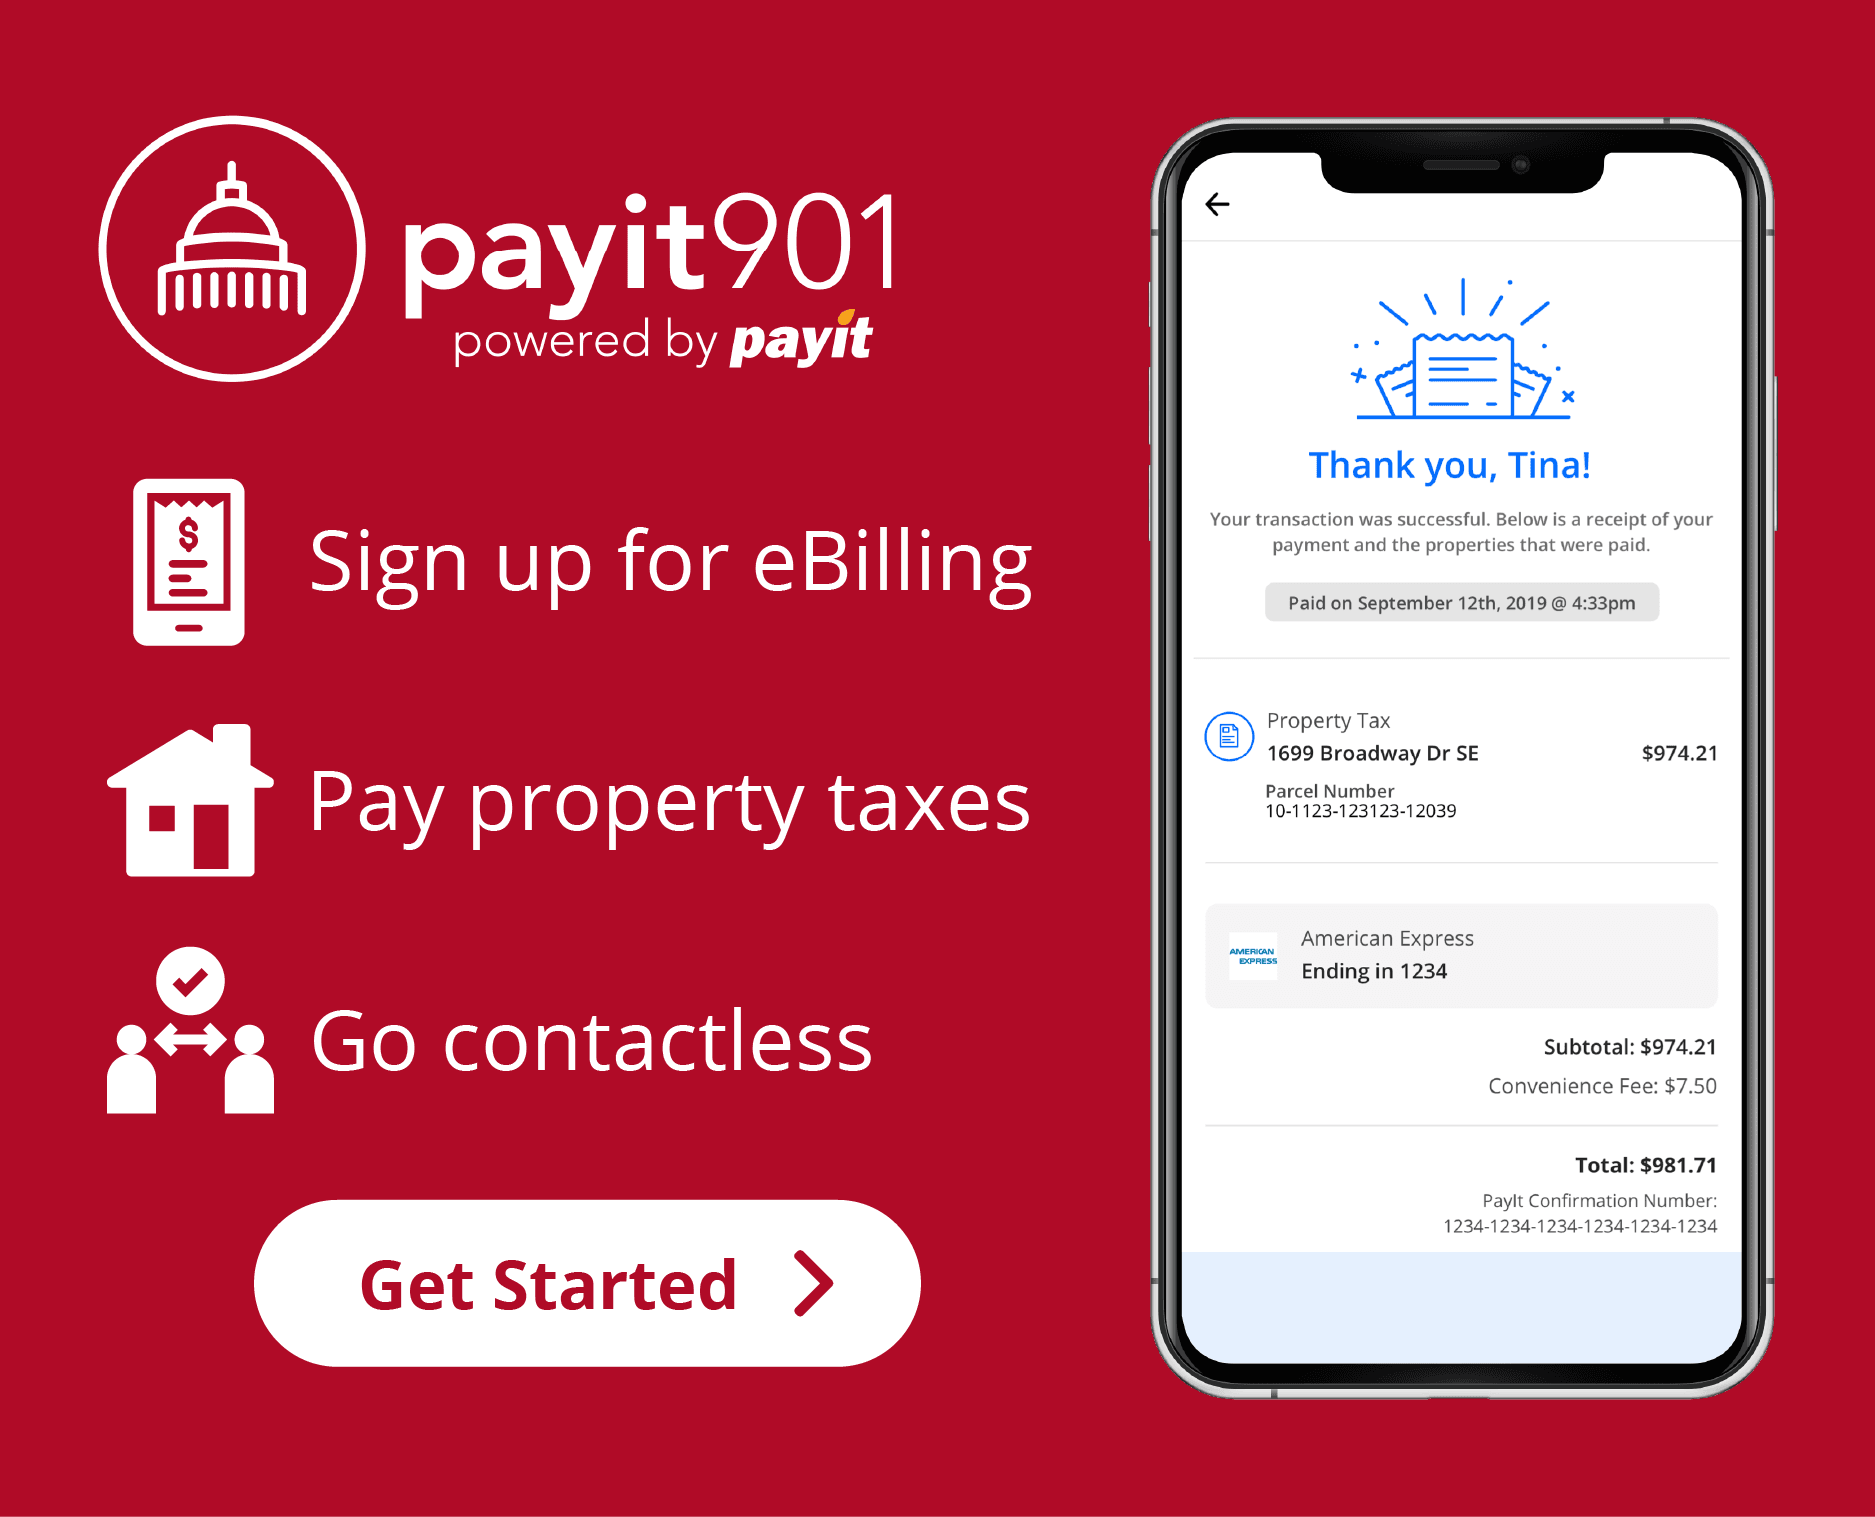 Payit901 - Pay Property Taxes